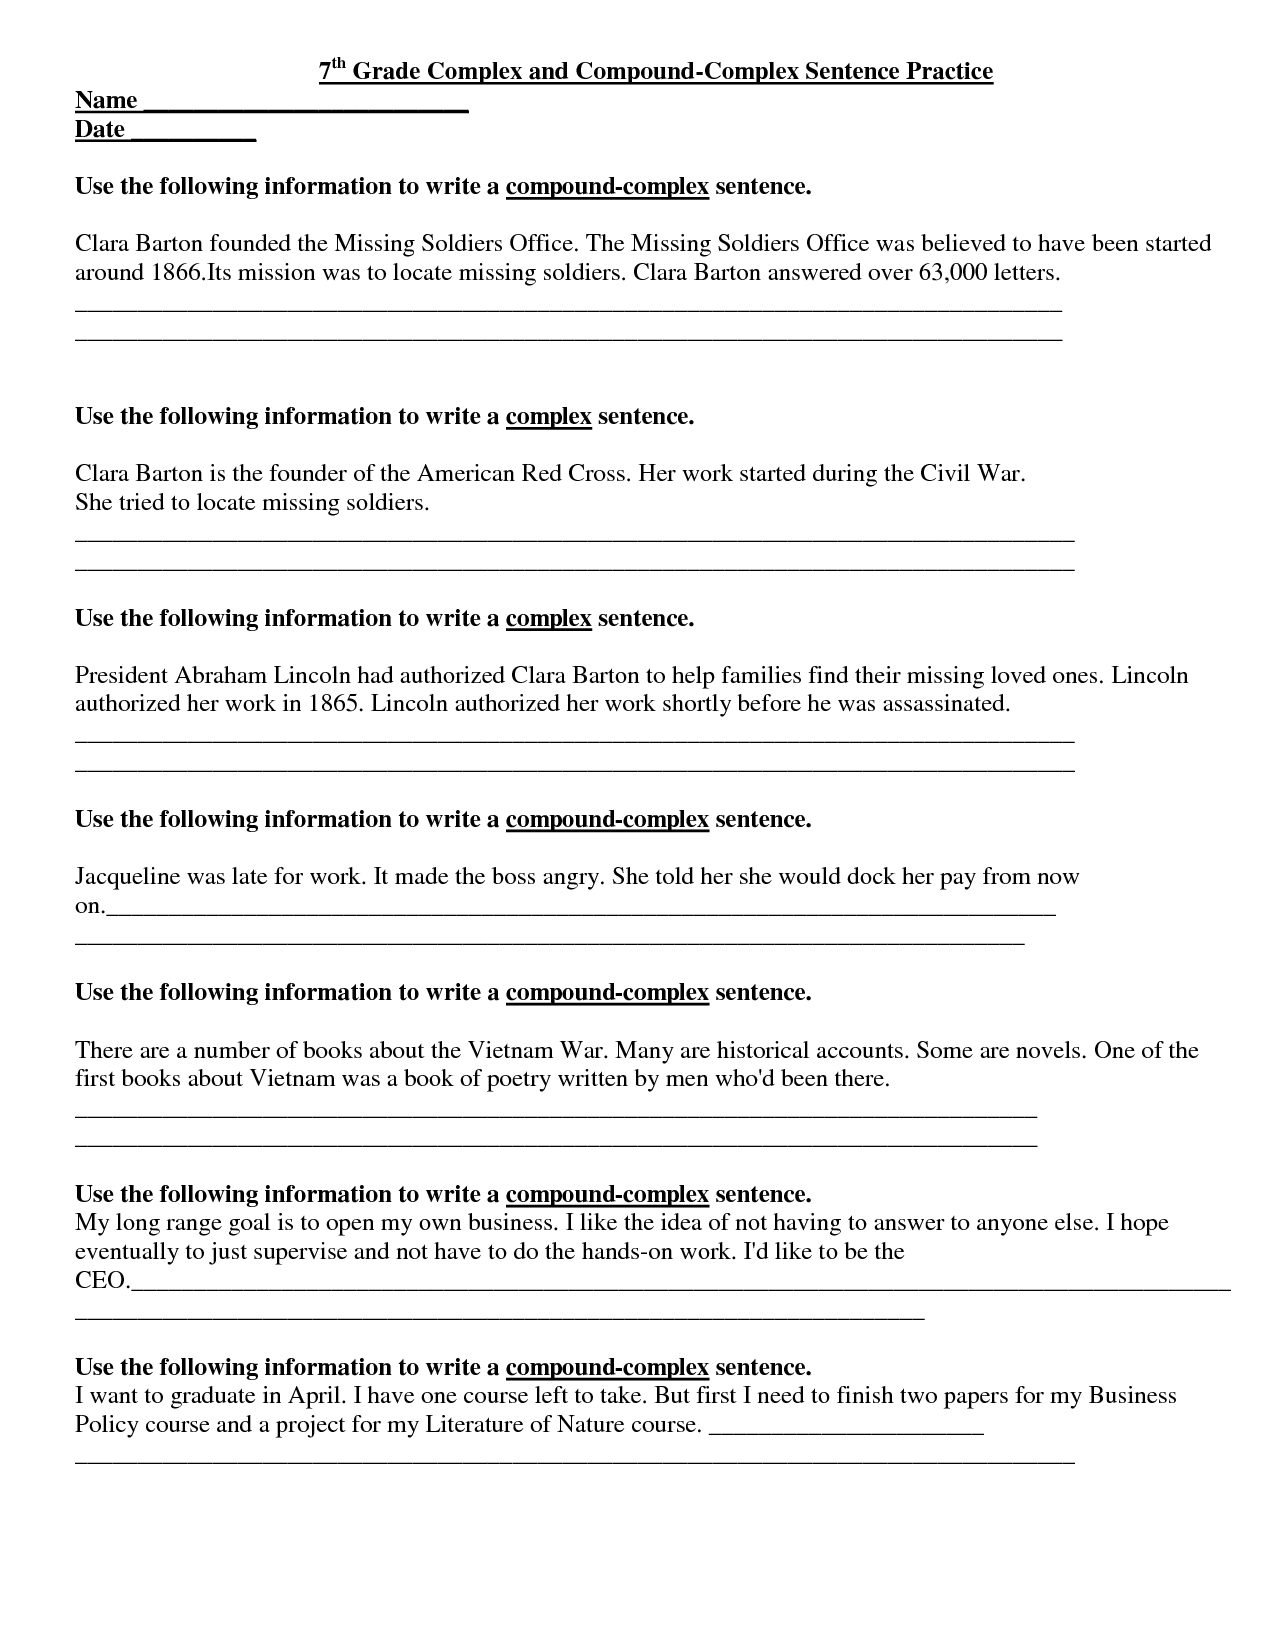 worksheet Seventh Grade Science Worksheets free 4th grade reading comprehension passages and questions 36 weeks printable pdf worksheets to